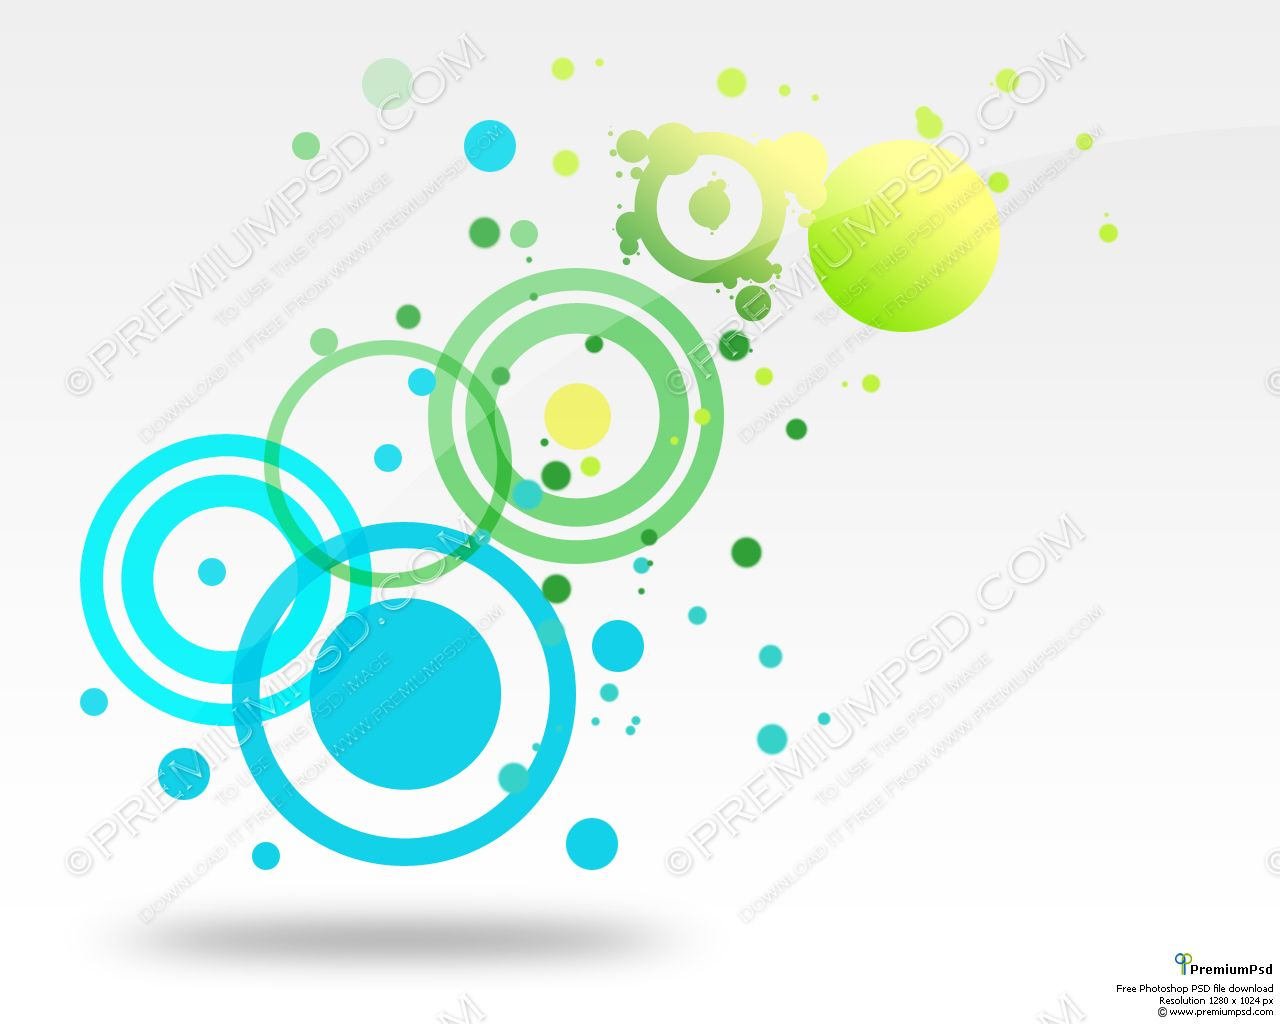 Abstract Colorful Background Vector - PSD Download - Premium PSD ...